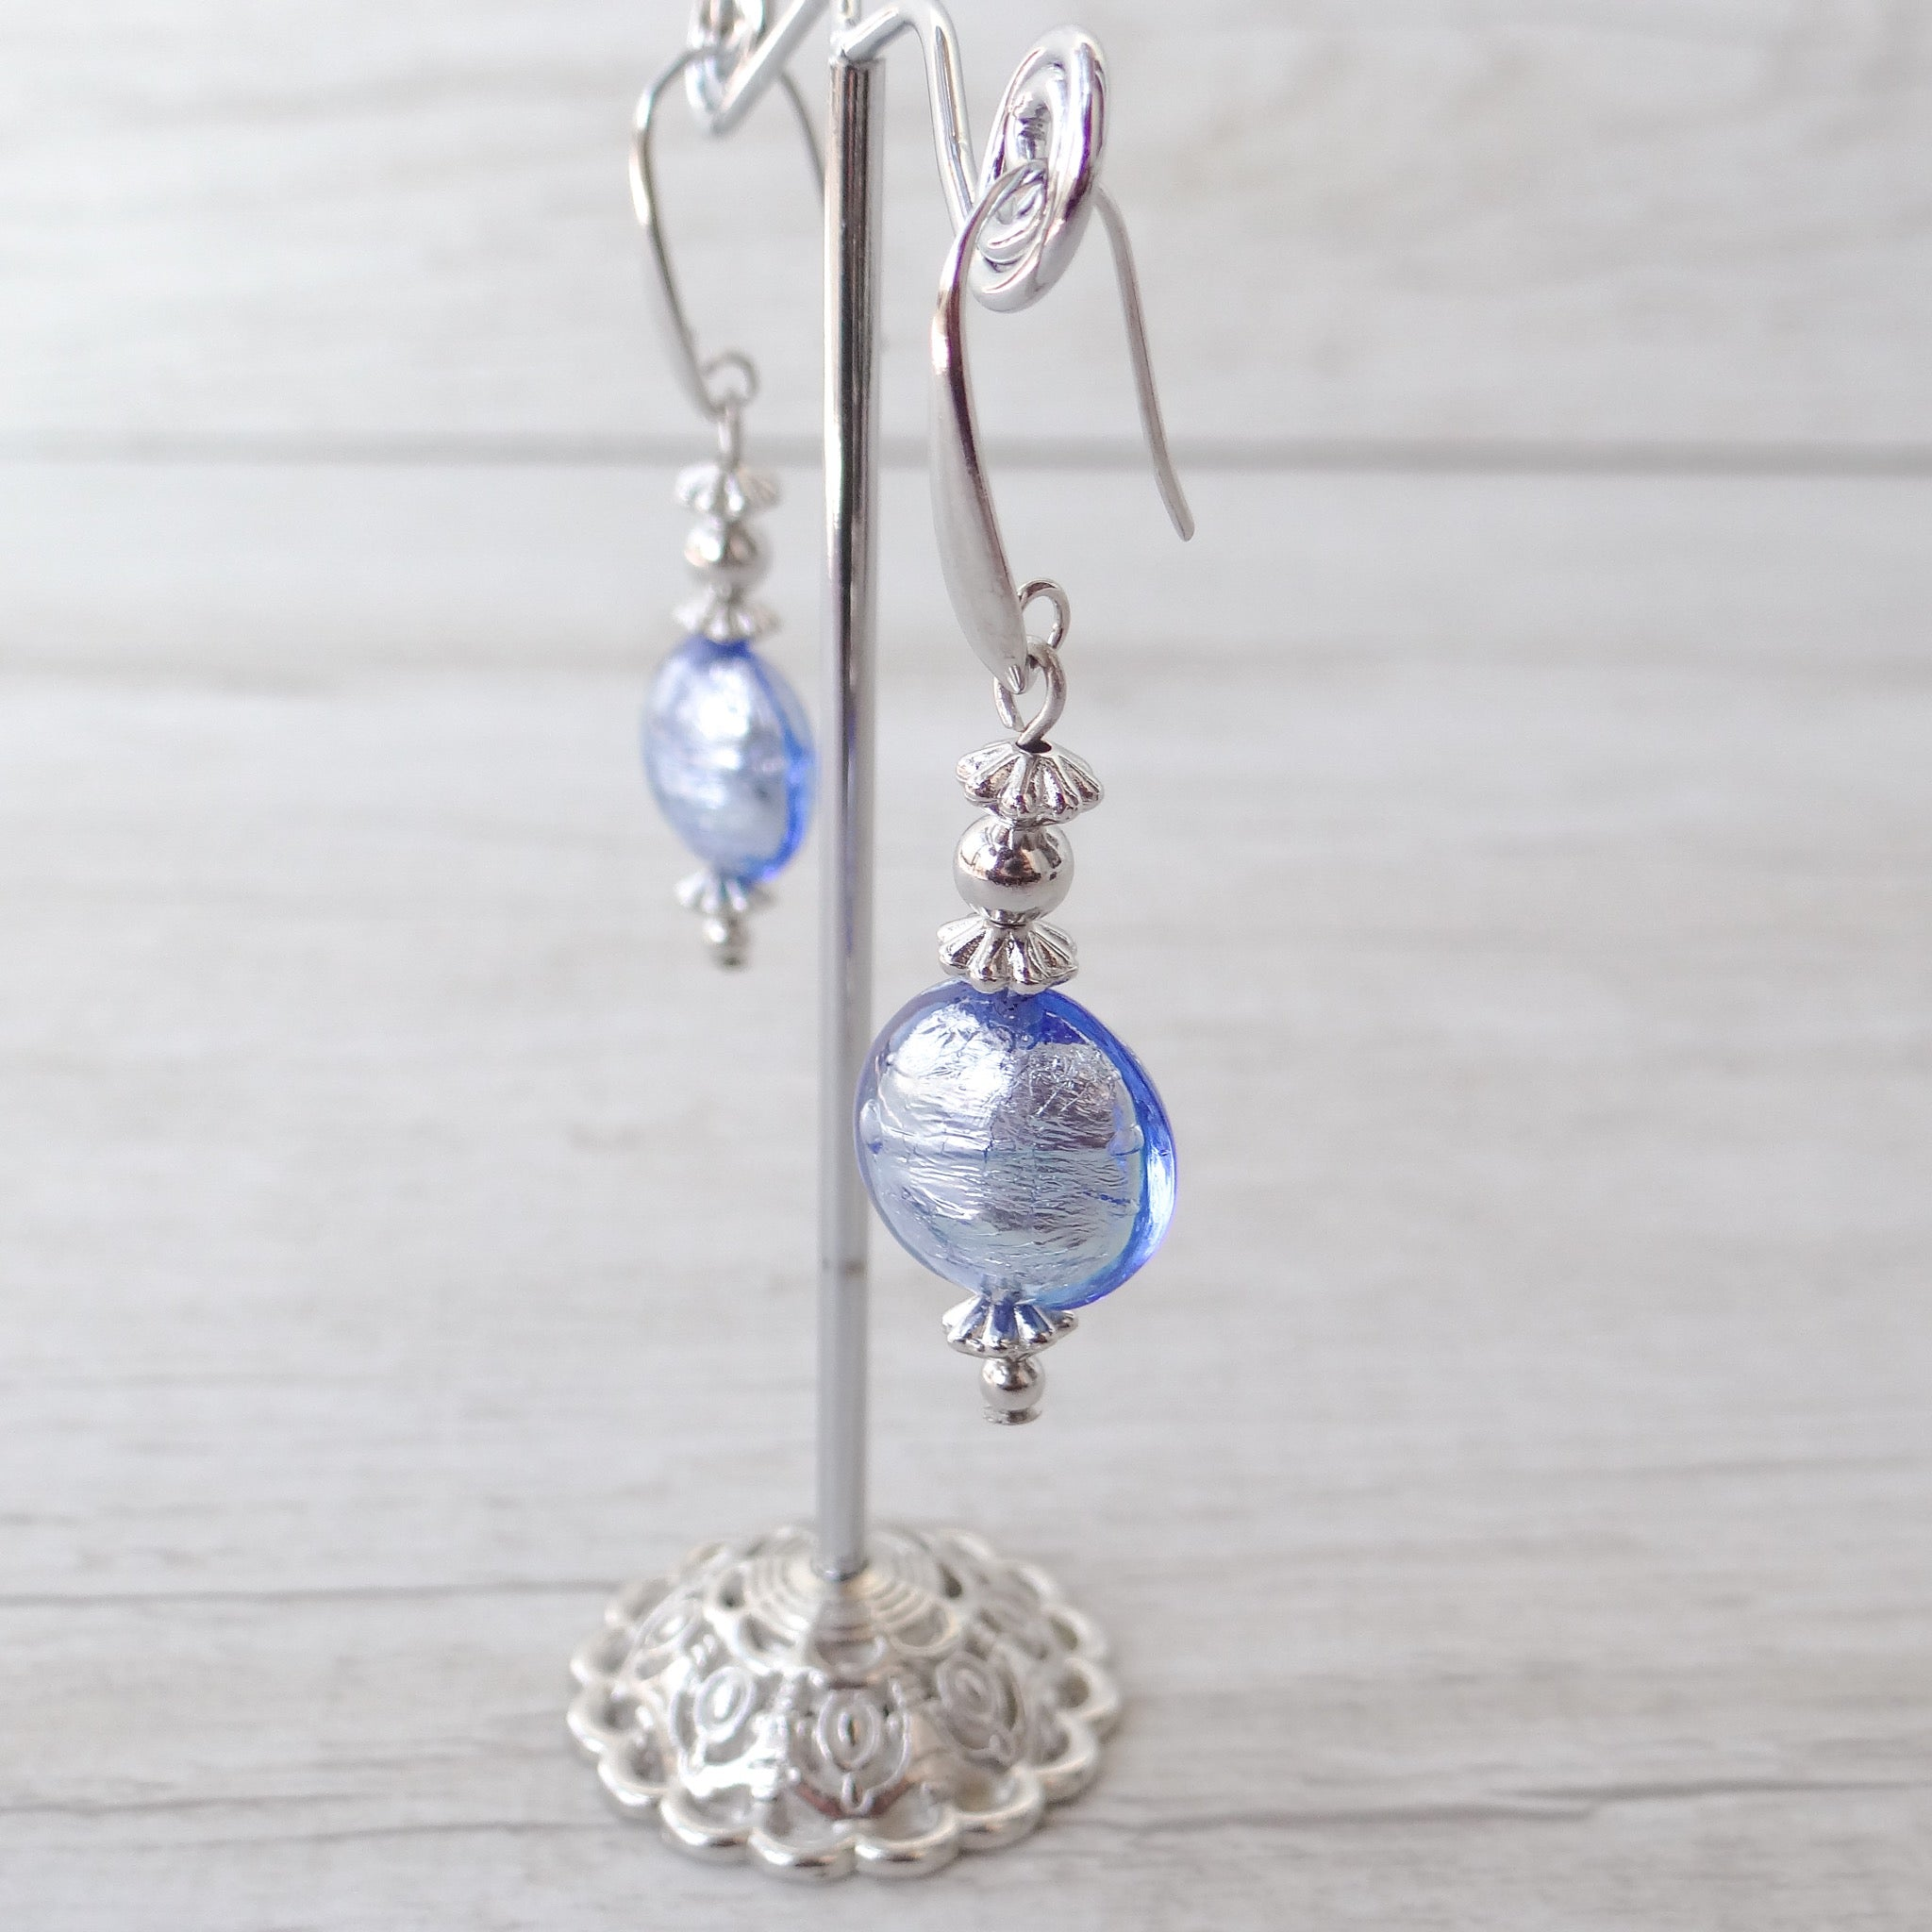 Schèi - Periwinkle Murano Glass Earrings